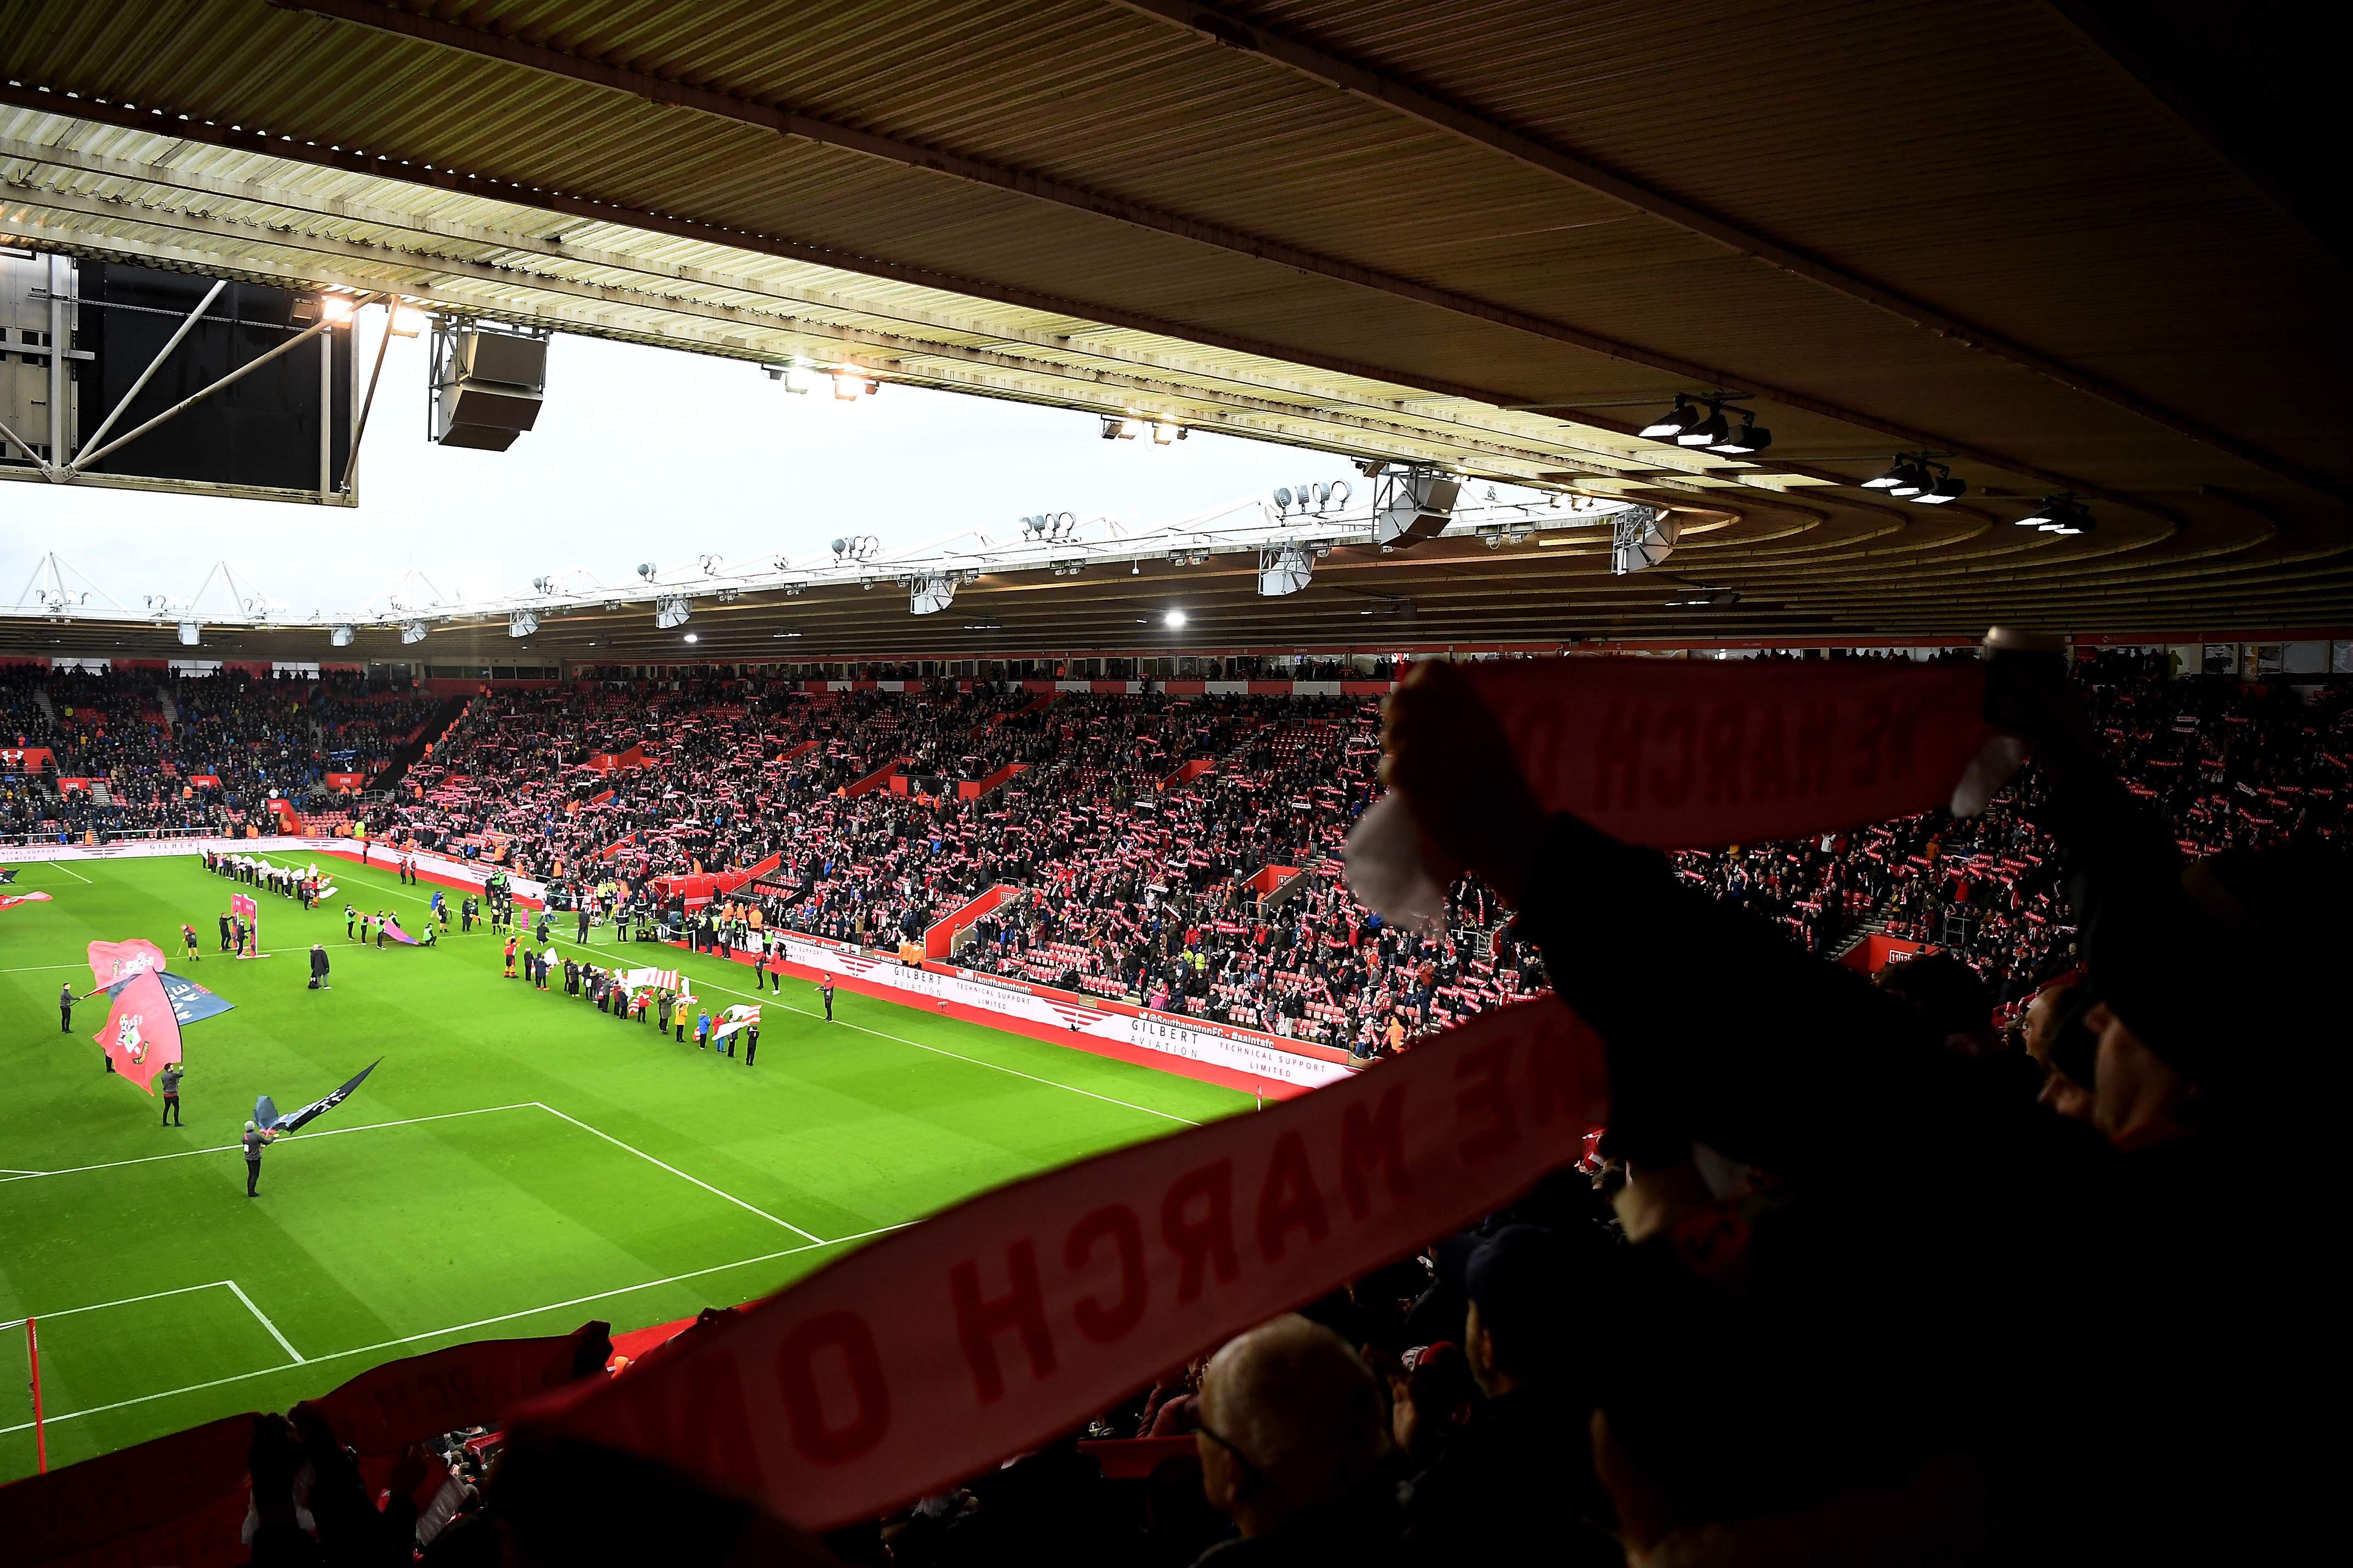 Southampton fans raising their free scarves at St Mary's against Everton in the Premier League